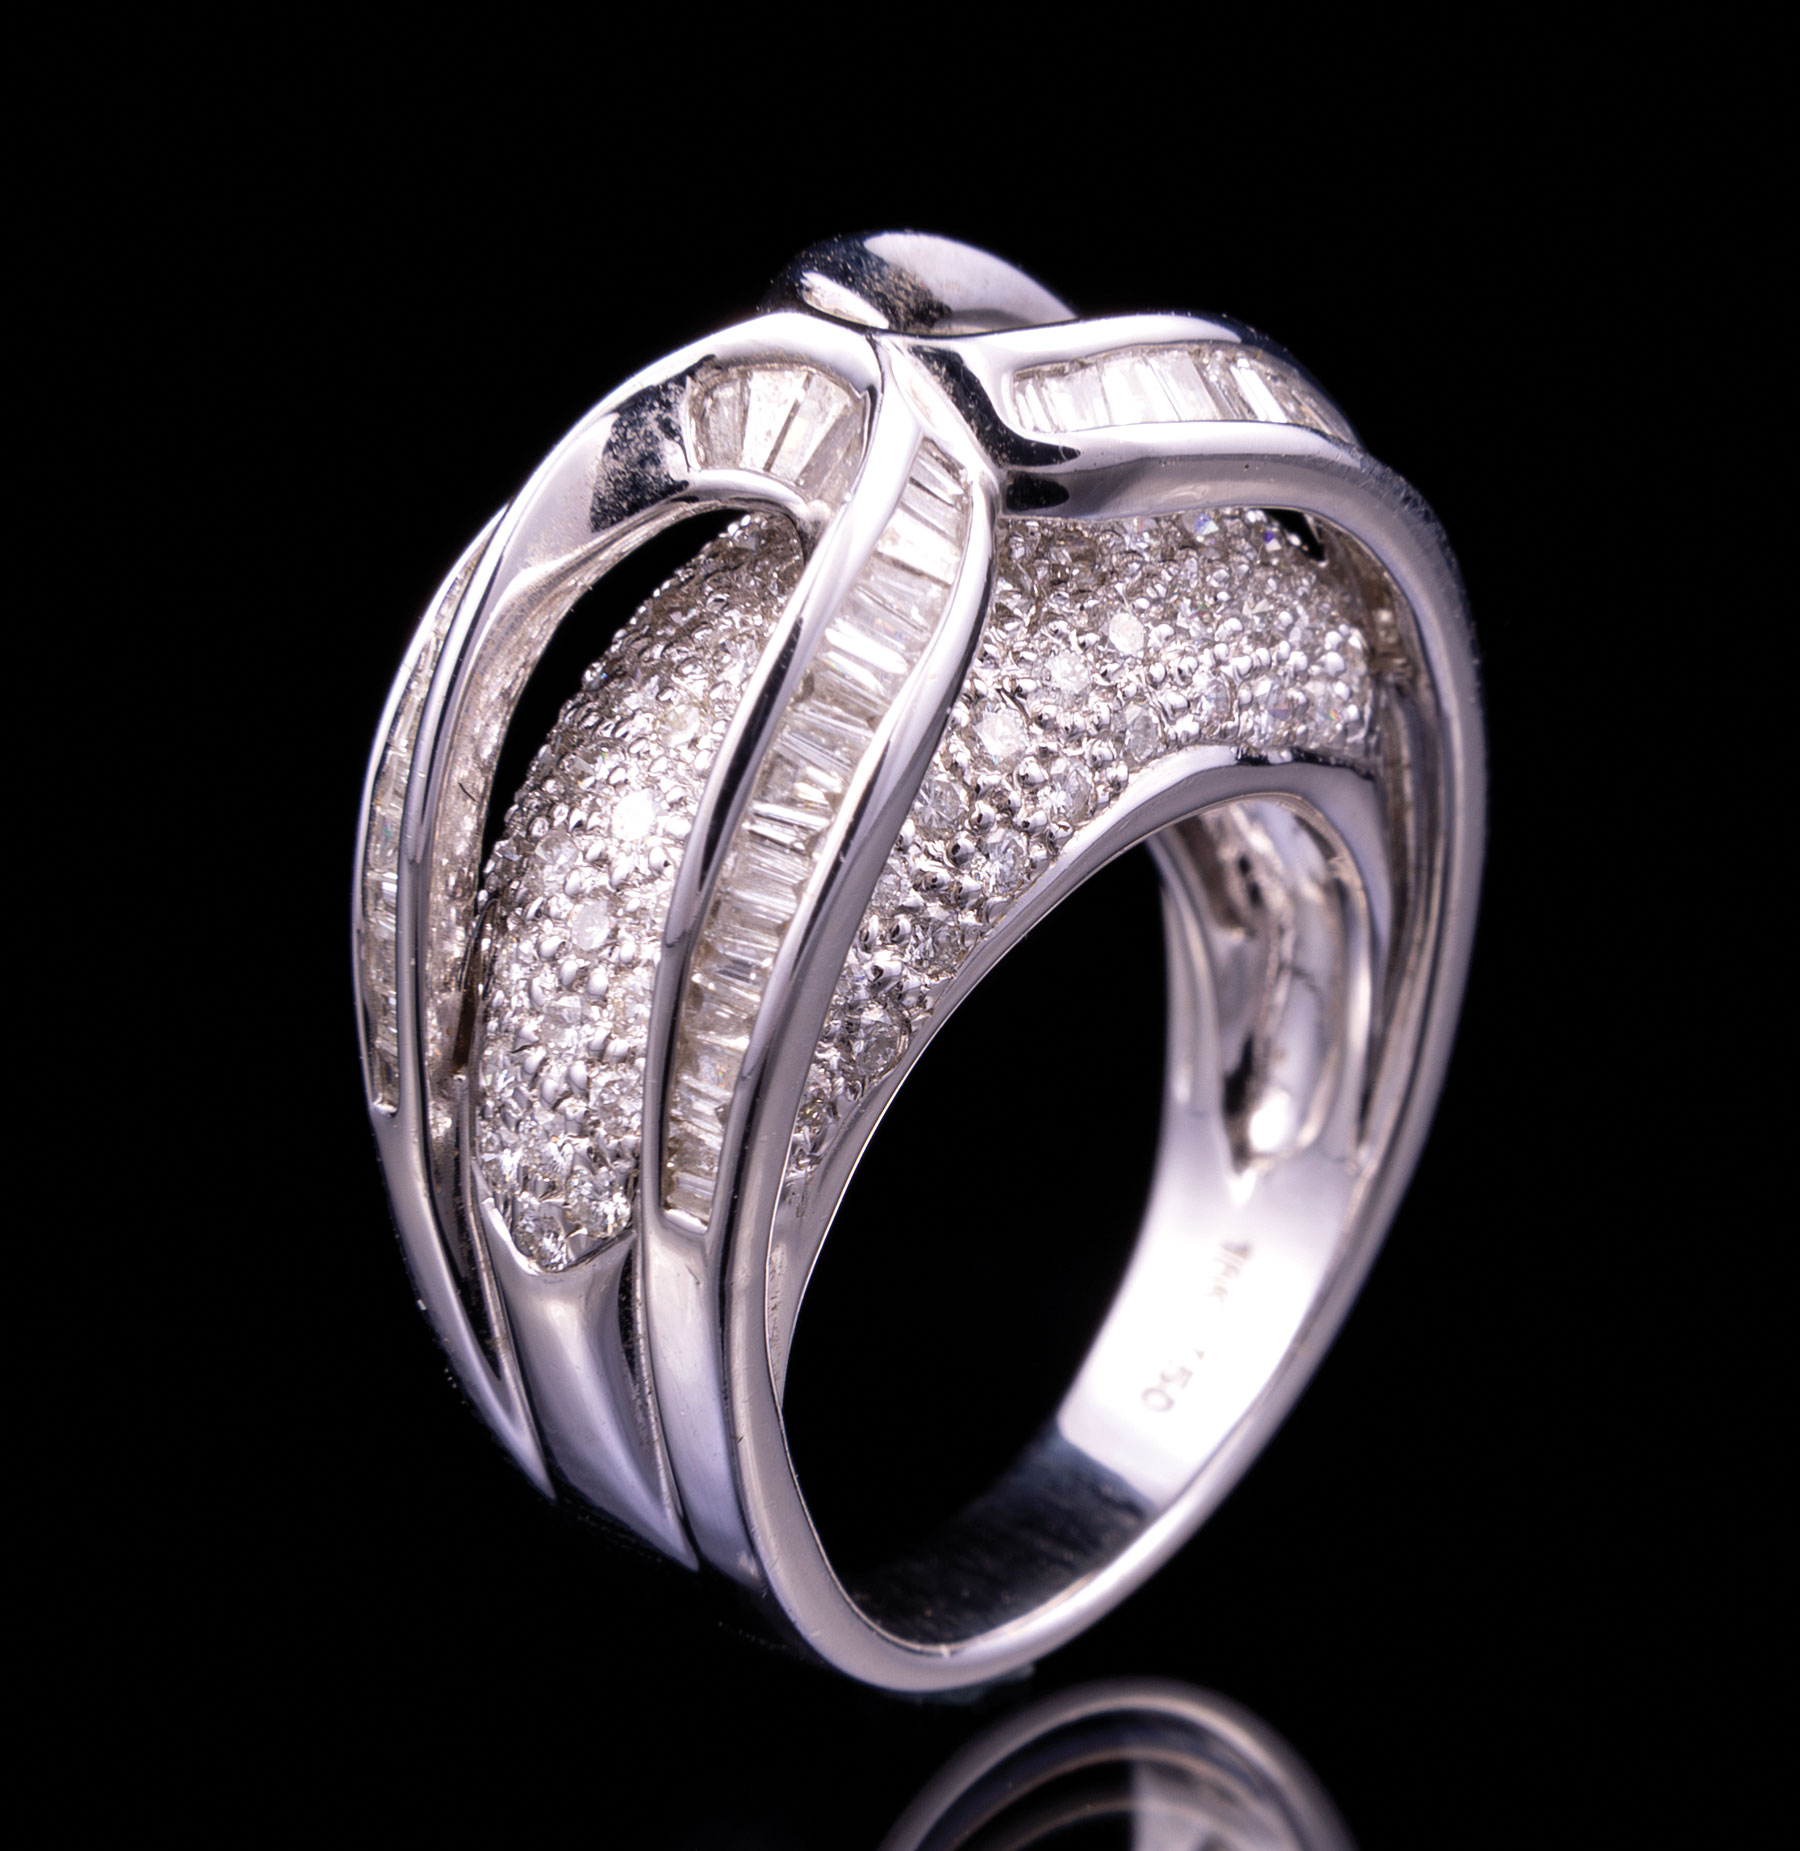 Lot 604 - 18 kt. White Gold and Diamond Ring , 107 pavé set round brilliant cut diamonds, total wt. approx.